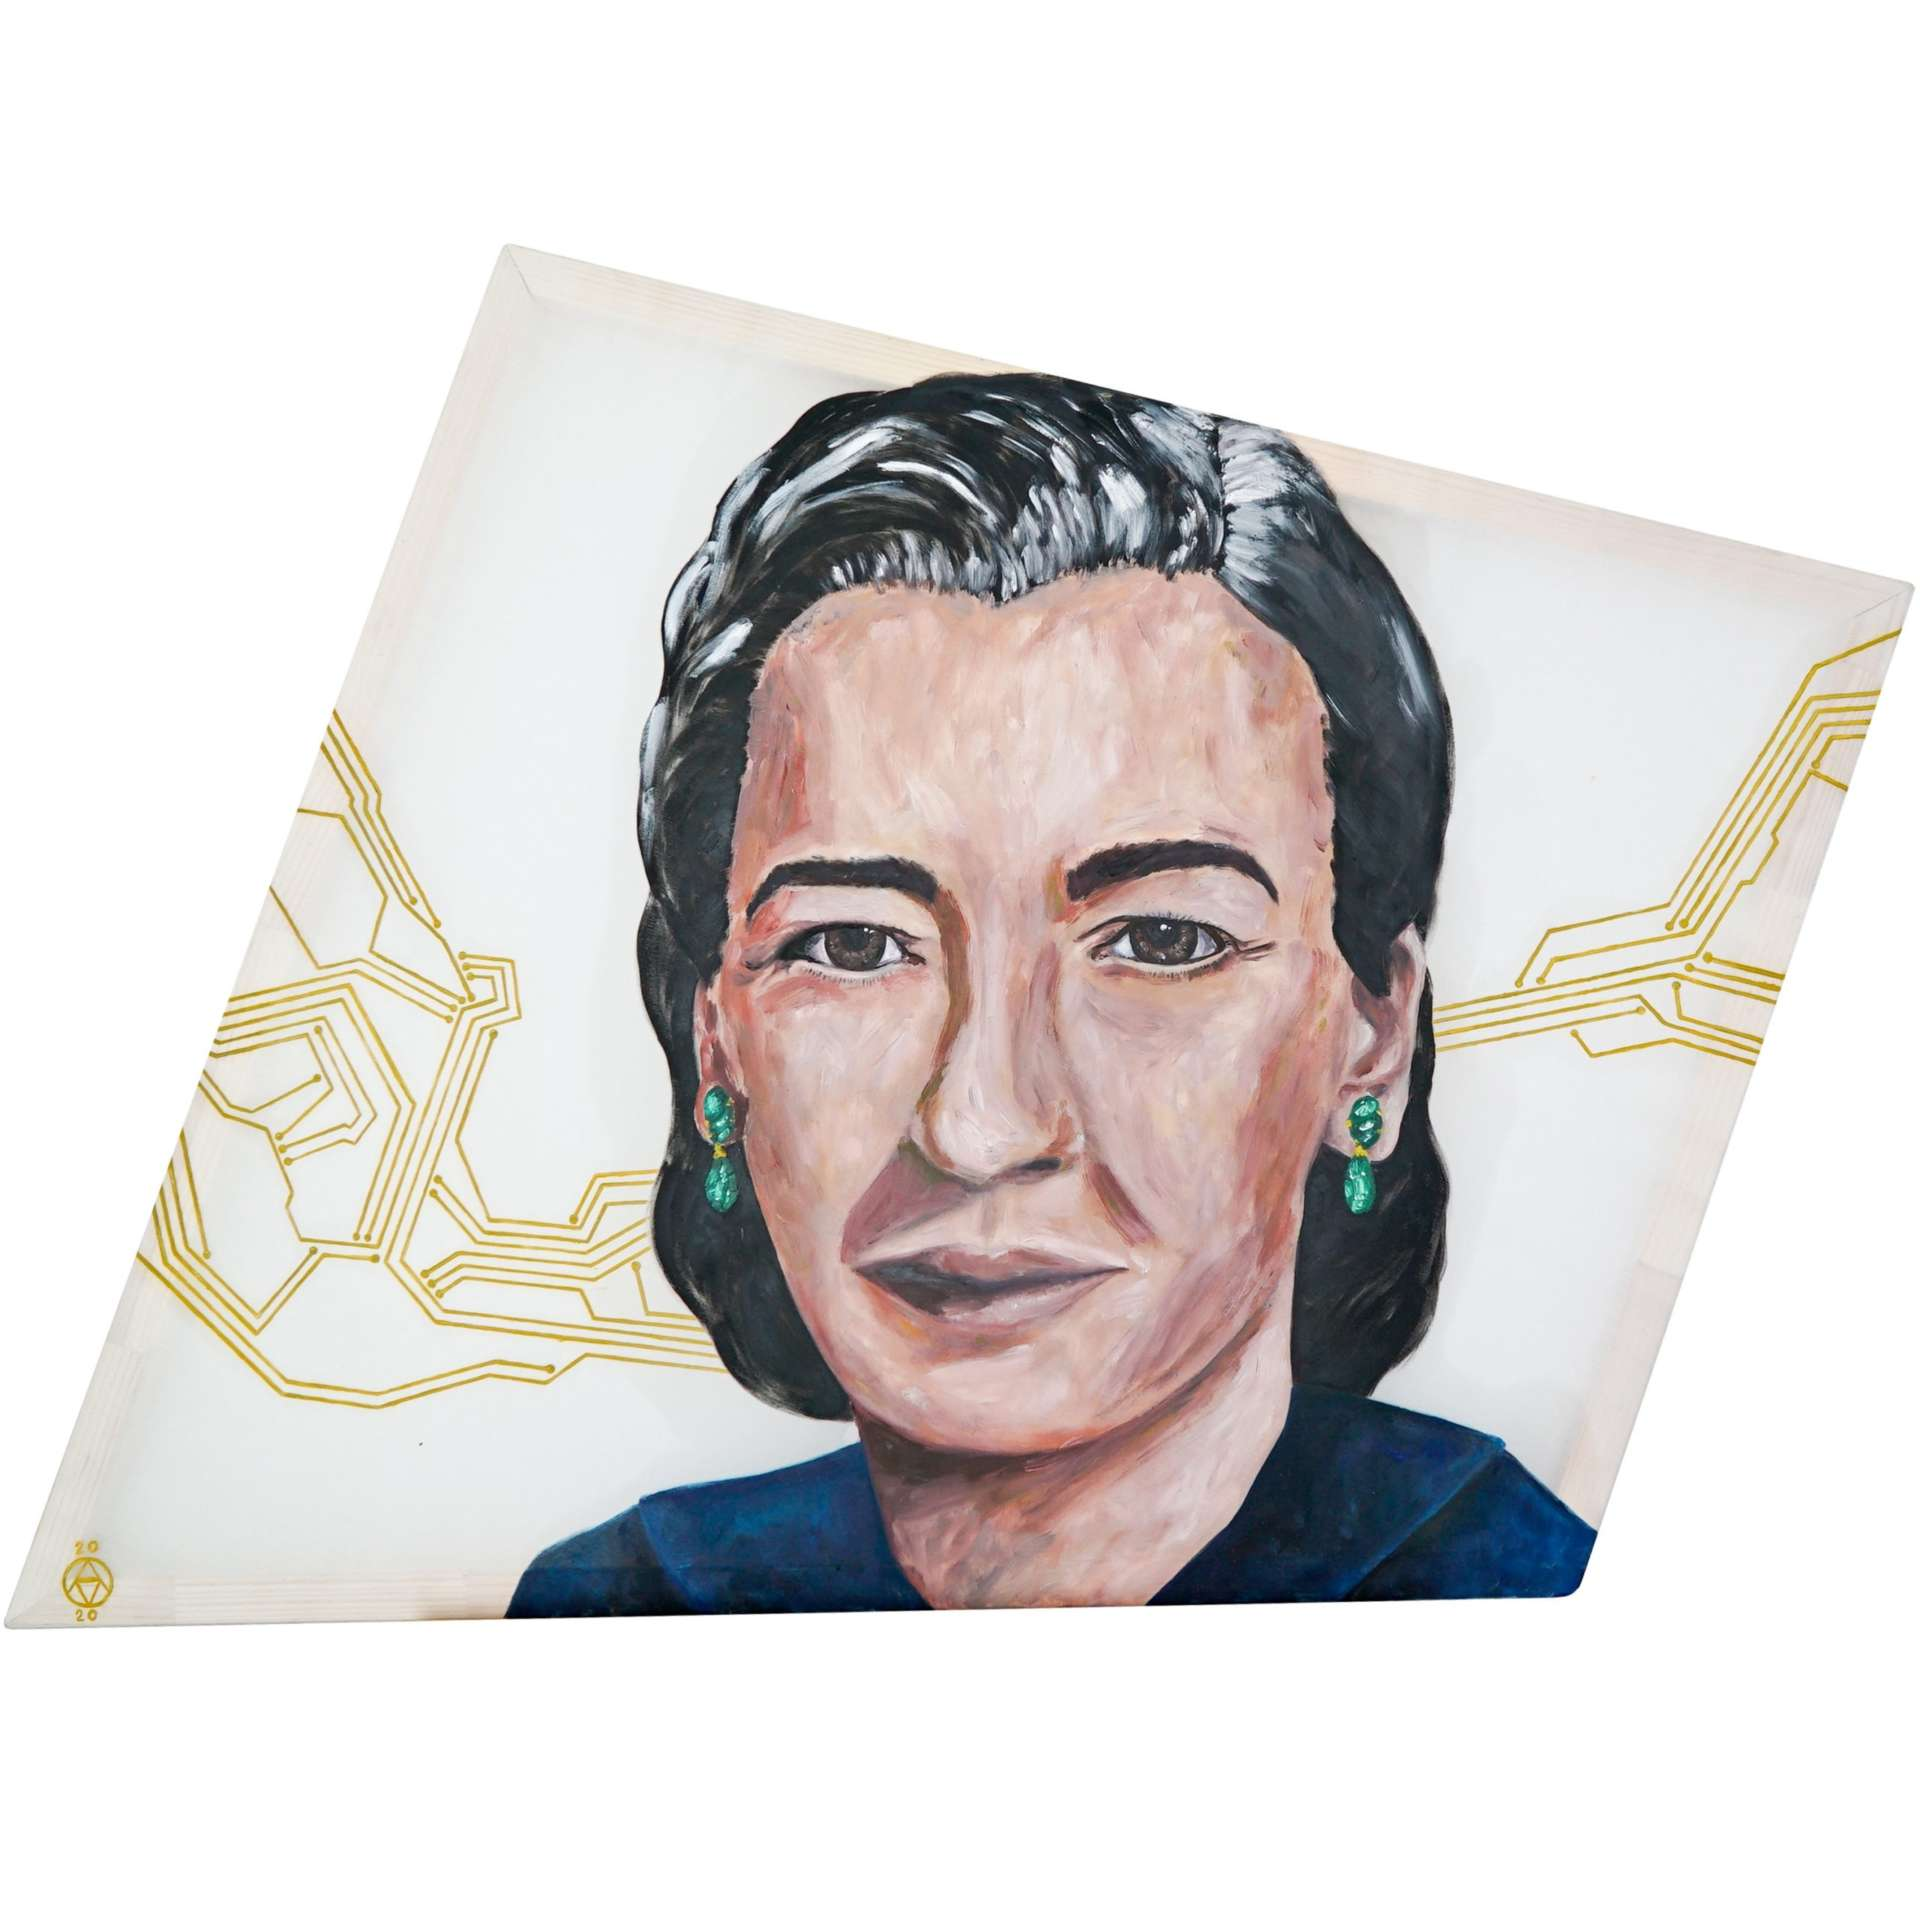 Dr Grace Murray Hopper painting portrait by Anya Vero in oil on silk